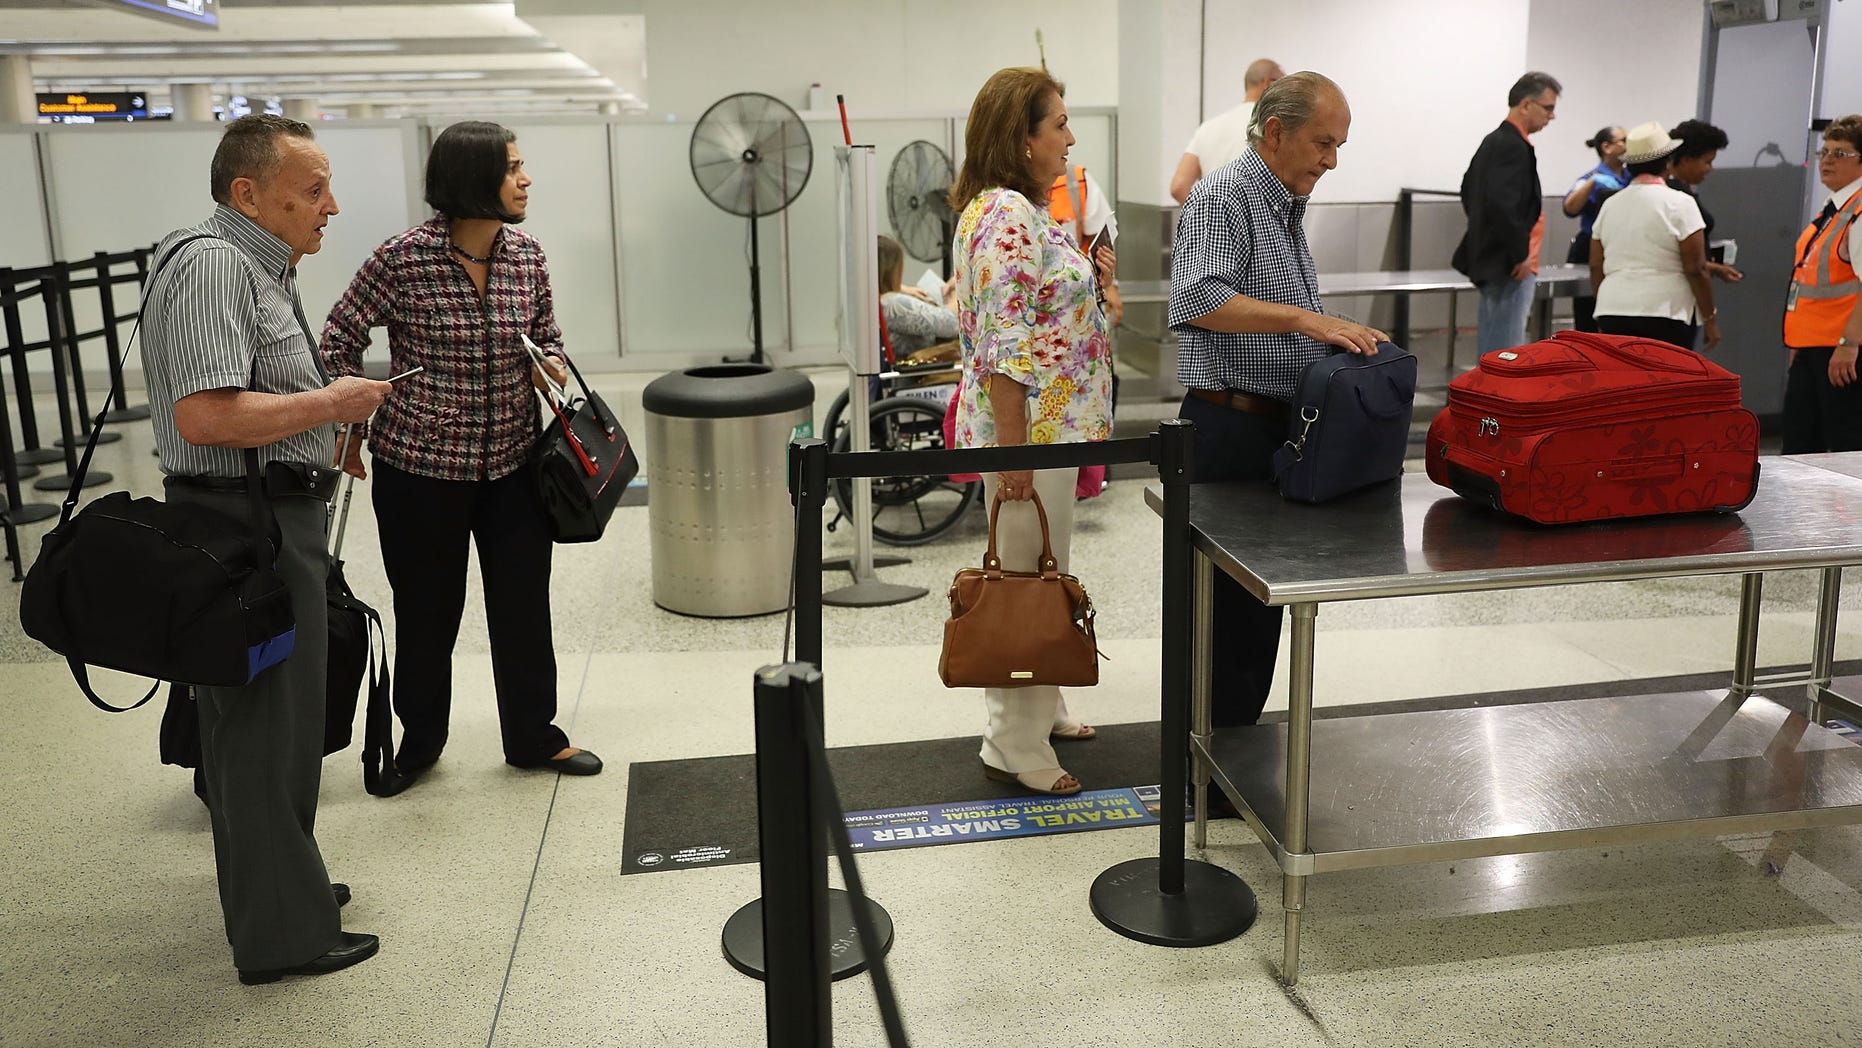 MIAMI, FL - JUNE 02:  Travelers go through the TSA PreCheck security point at Miami International Airport on June 2, 2016 in Miami, Florida. As the busy summer travel season heats up the Transportation Security Administration is encouraging people to sign up for the TSA PreCheck program to save time going through the airports security lines. Those enrolled in the program can leave their shoes, light outerwear and belt on during the terminal screening process as well as keeping their laptop in the carry-on suitcase without having to remove them at the checkpoint. (Photo by Joe Raedle/Getty Images)